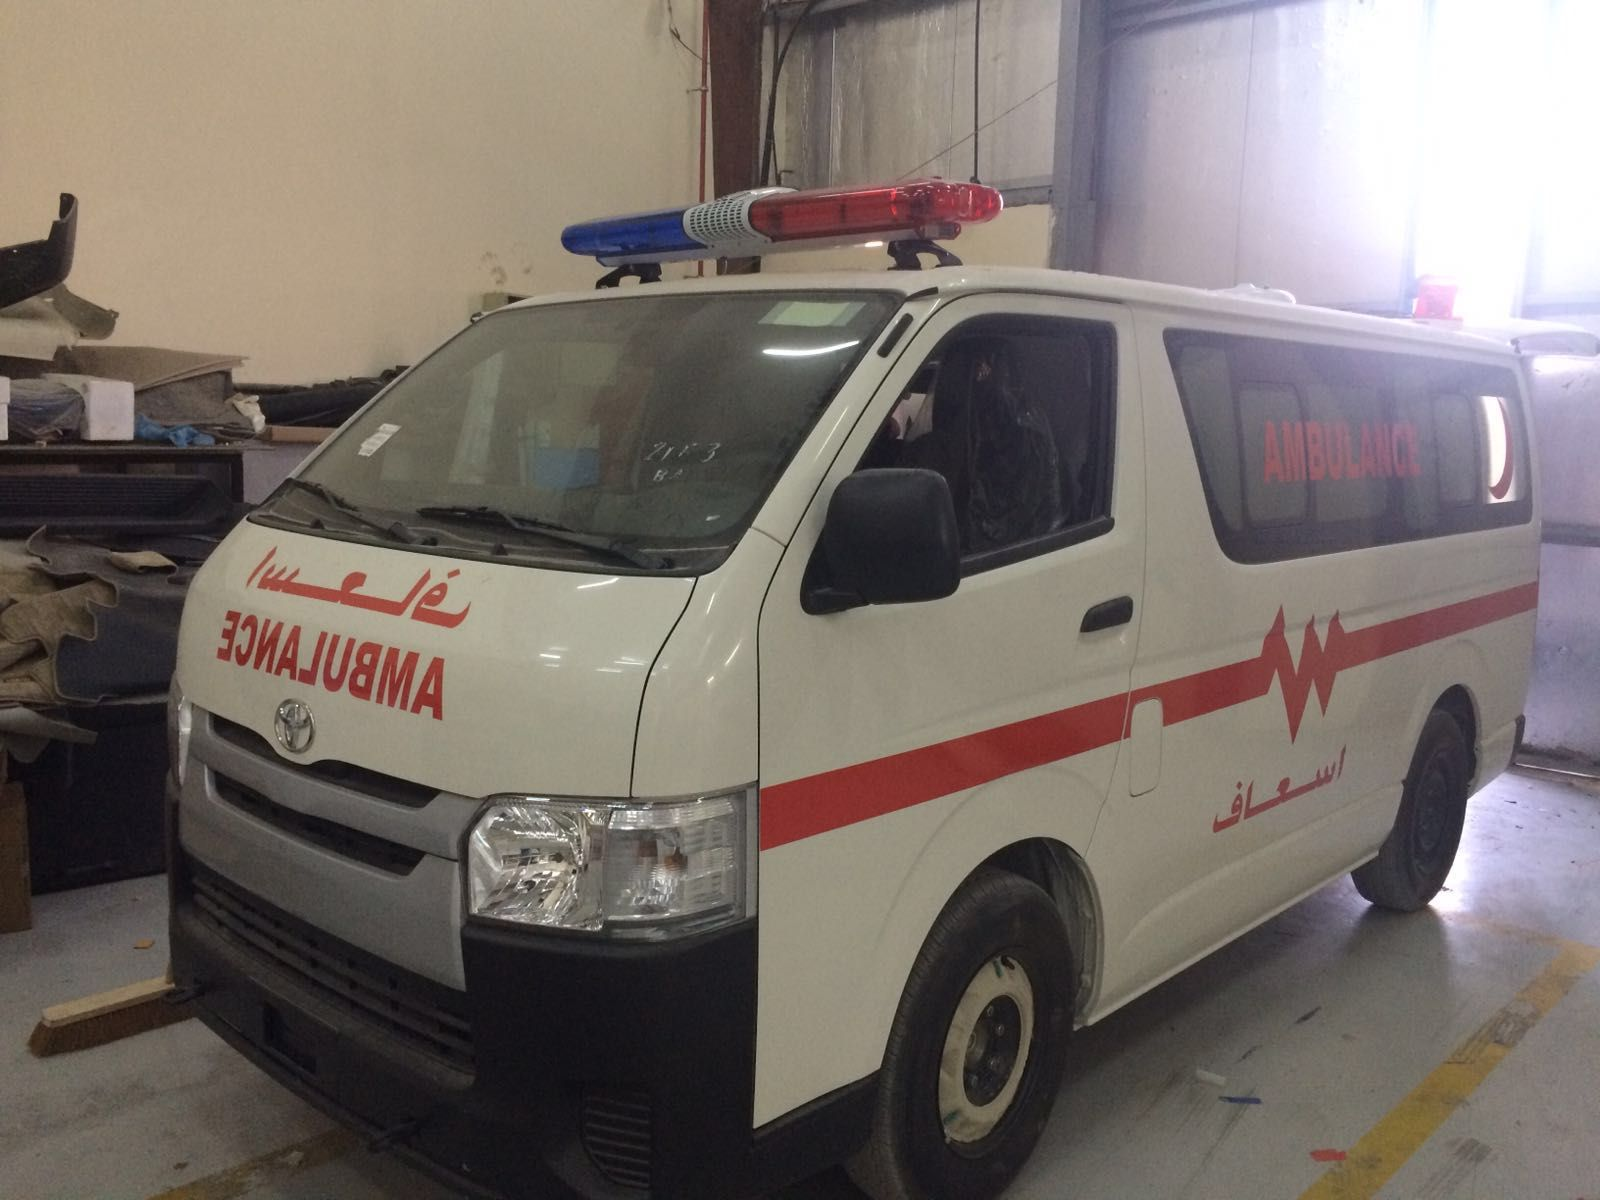 Toyota Hiace Standard Roof Ambulance Standard Vehicle Specifications Engine Diesel 2 5 Litre 4 Cylinder 70l Fuel Tank Toyota Hiace Ambulance Toyota